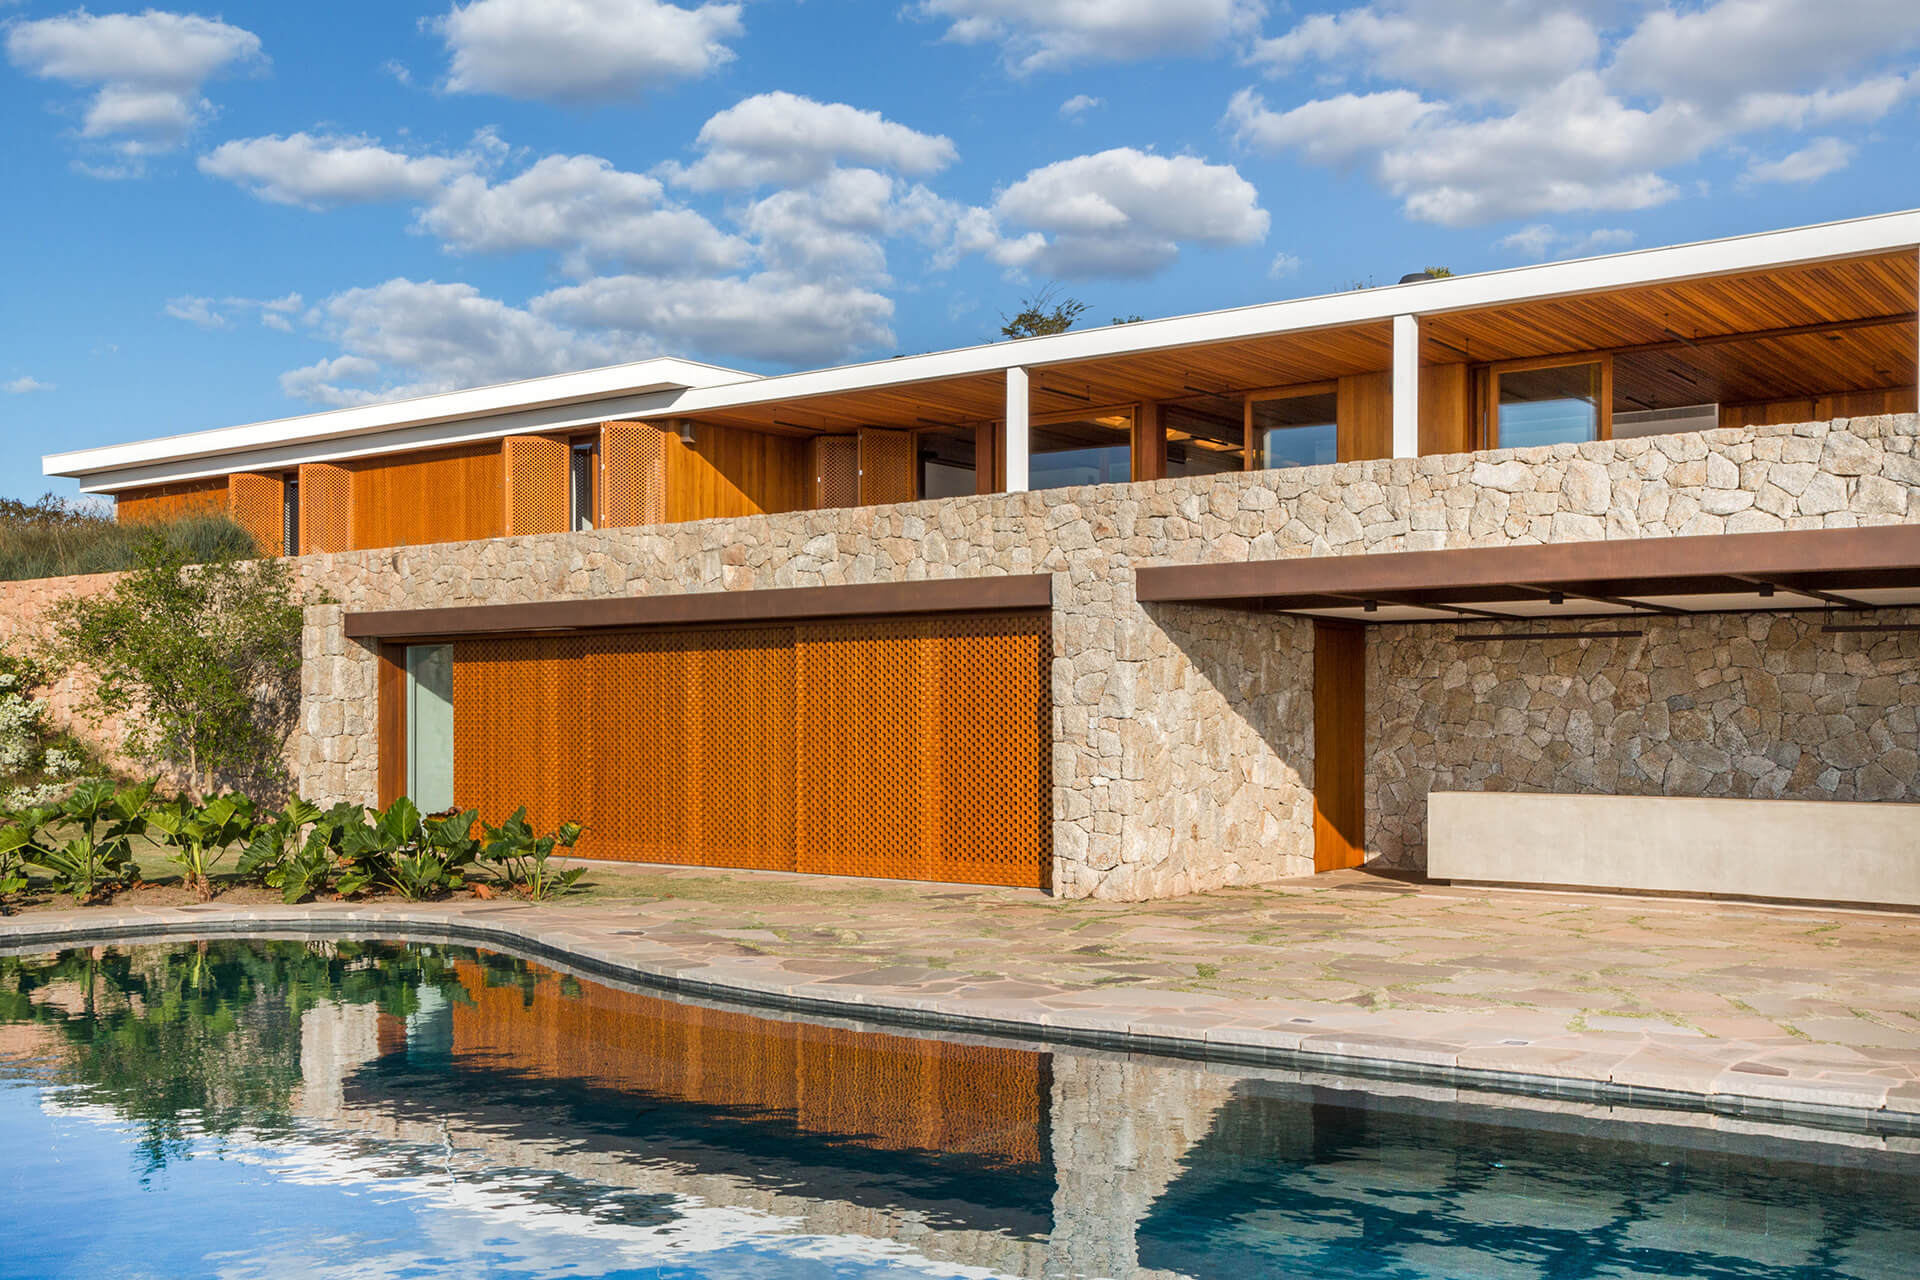 The house and its surrounding landscape | Siqueira + Azul Arquitetura | Brazil | STIRworld